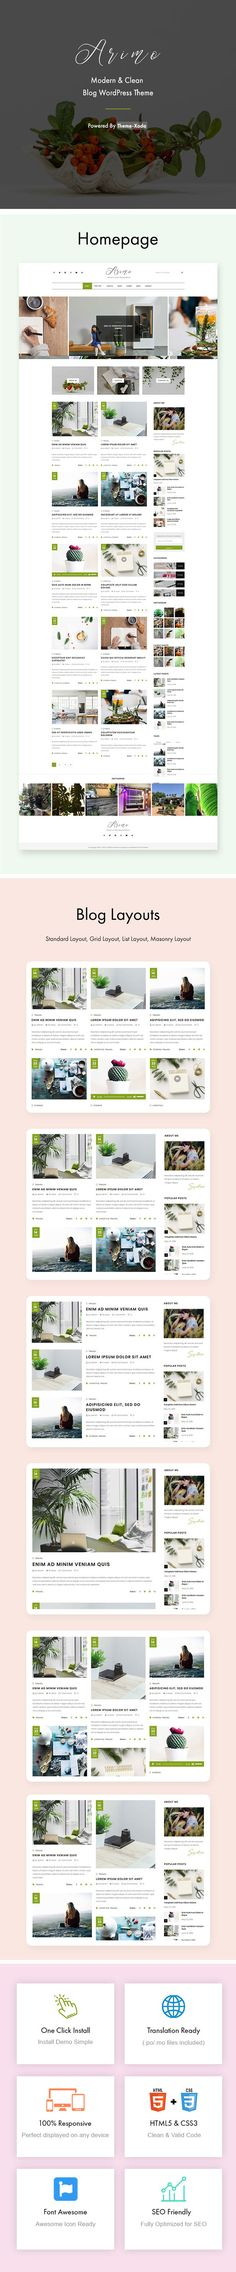 Arimo - Modern & Clean Blog WordPress - ThemeXoda